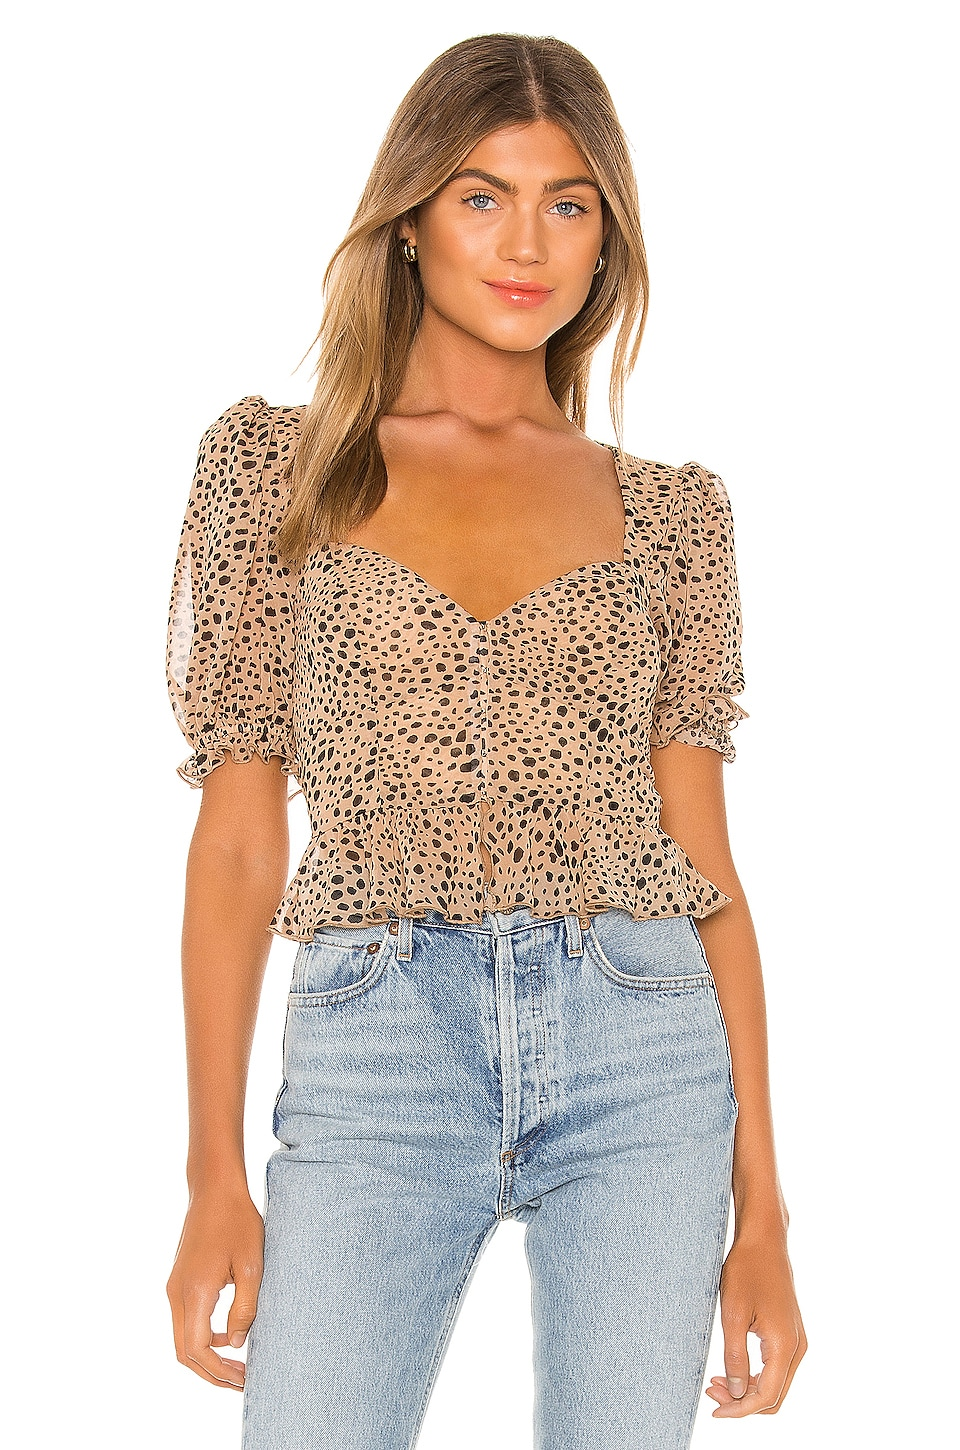 MAJORELLE Pacific Top in Natural Leopard